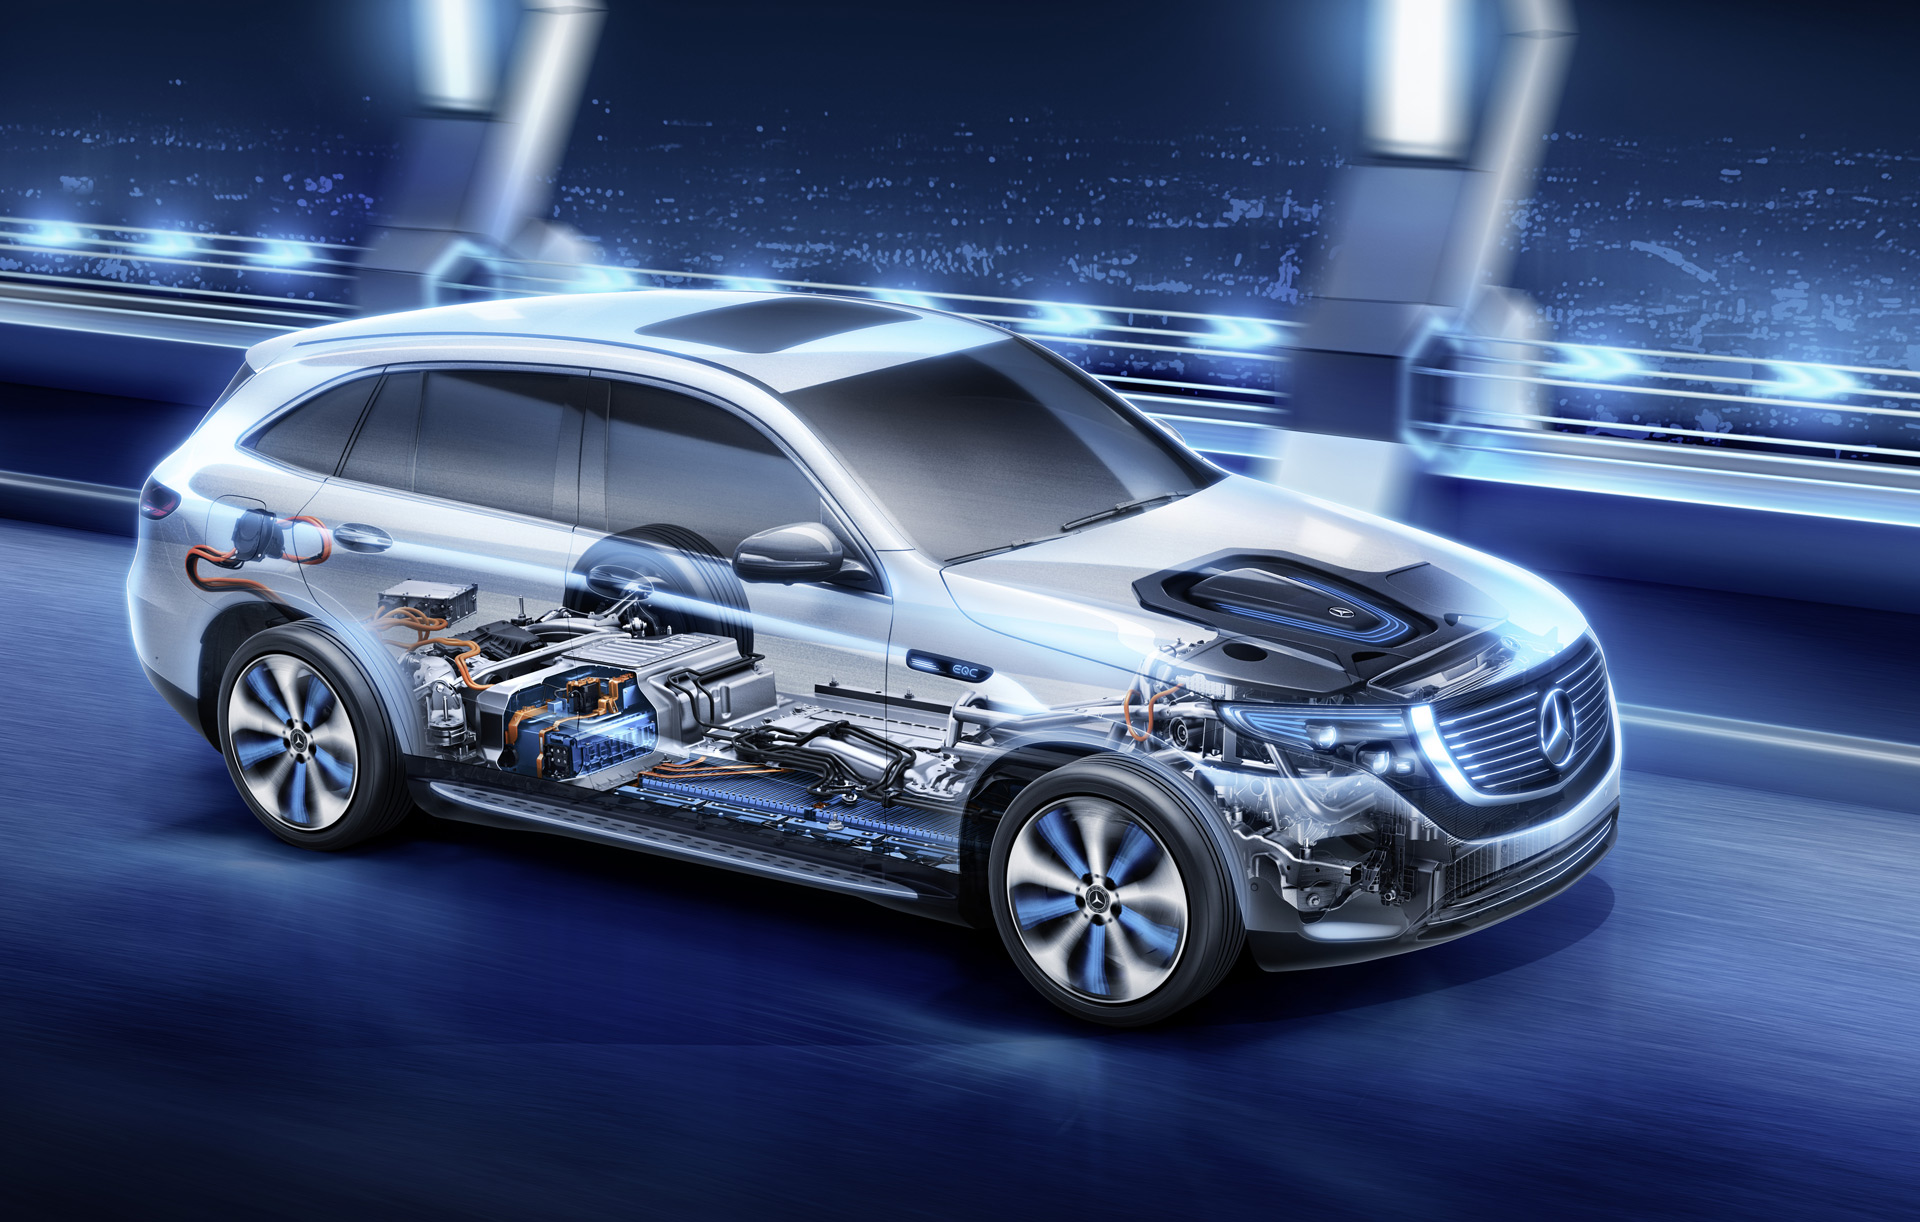 Mercedes-Benz moves to build battery supply chain in Europe